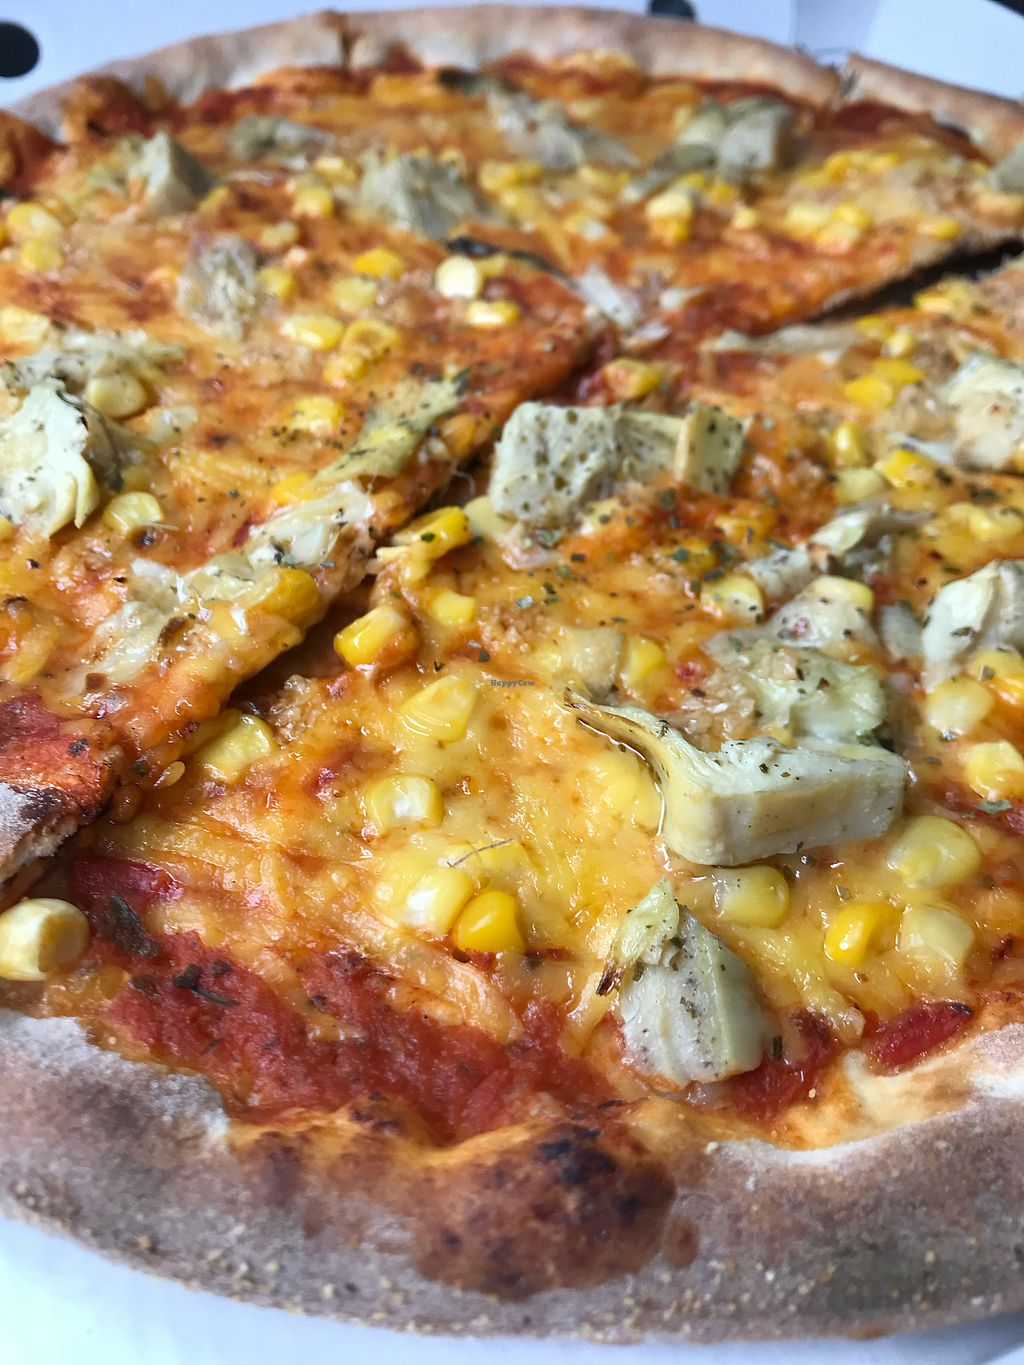 """Photo of La Pizza Buona, Pizzakurier & Takeaway  by <a href=""""/members/profile/nutri_shion"""">nutri_shion</a> <br/>Vegan pizza with wilmersburger cheese, corn and artichokes <br/> January 14, 2018  - <a href='/contact/abuse/image/96291/346462'>Report</a>"""